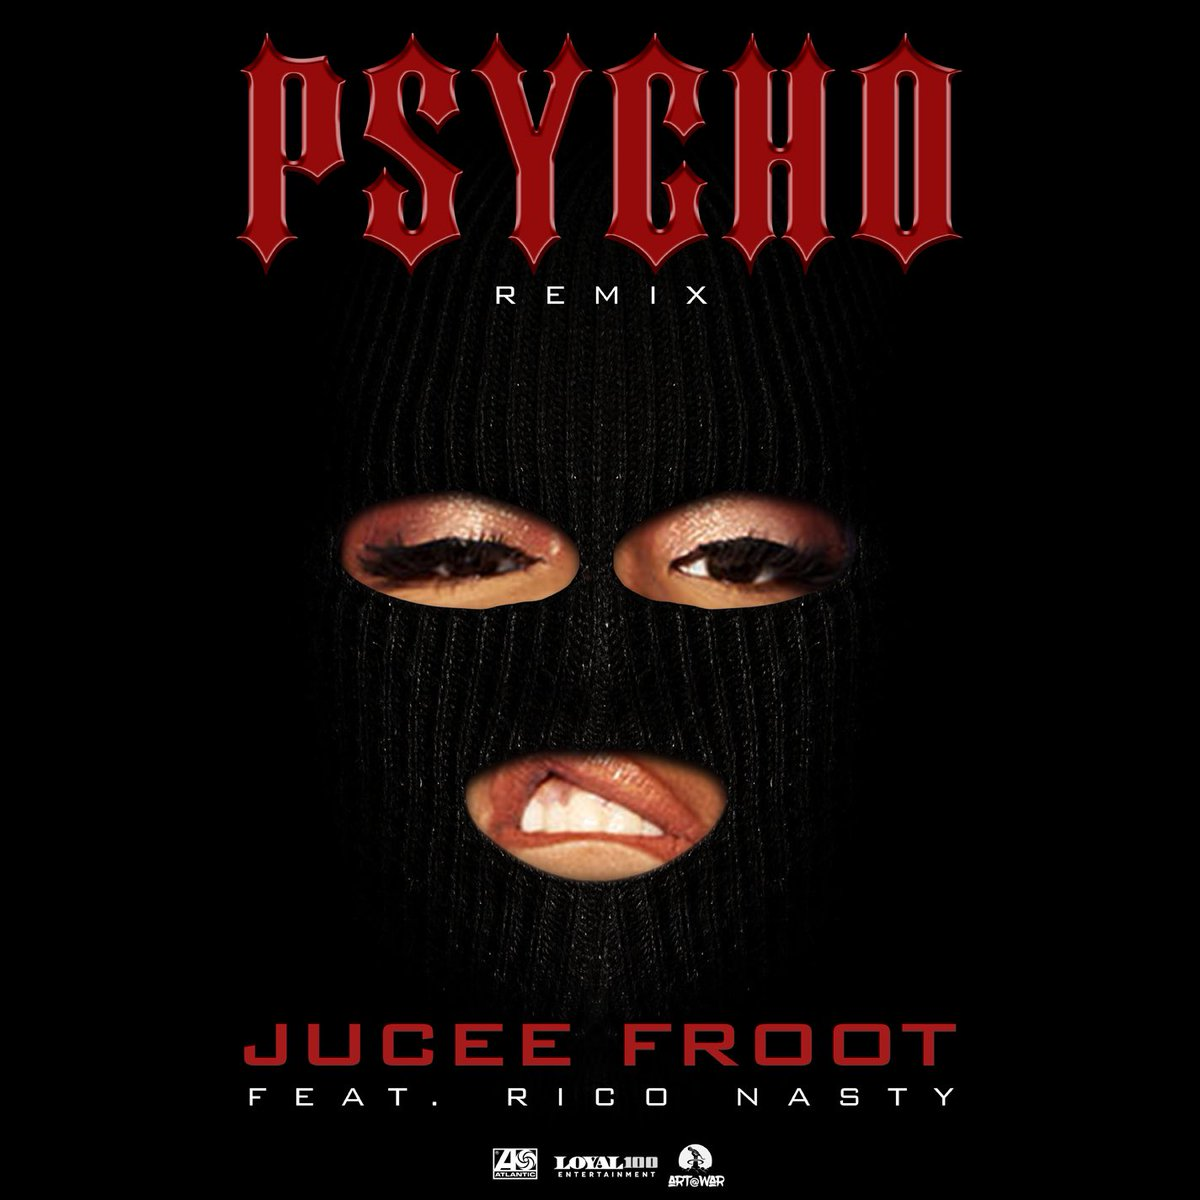 DROPPING PSYCHO REMIX WITH RicoNasty 1/31 @12midnight EST 🔥🔥🔥🔥YALL READY